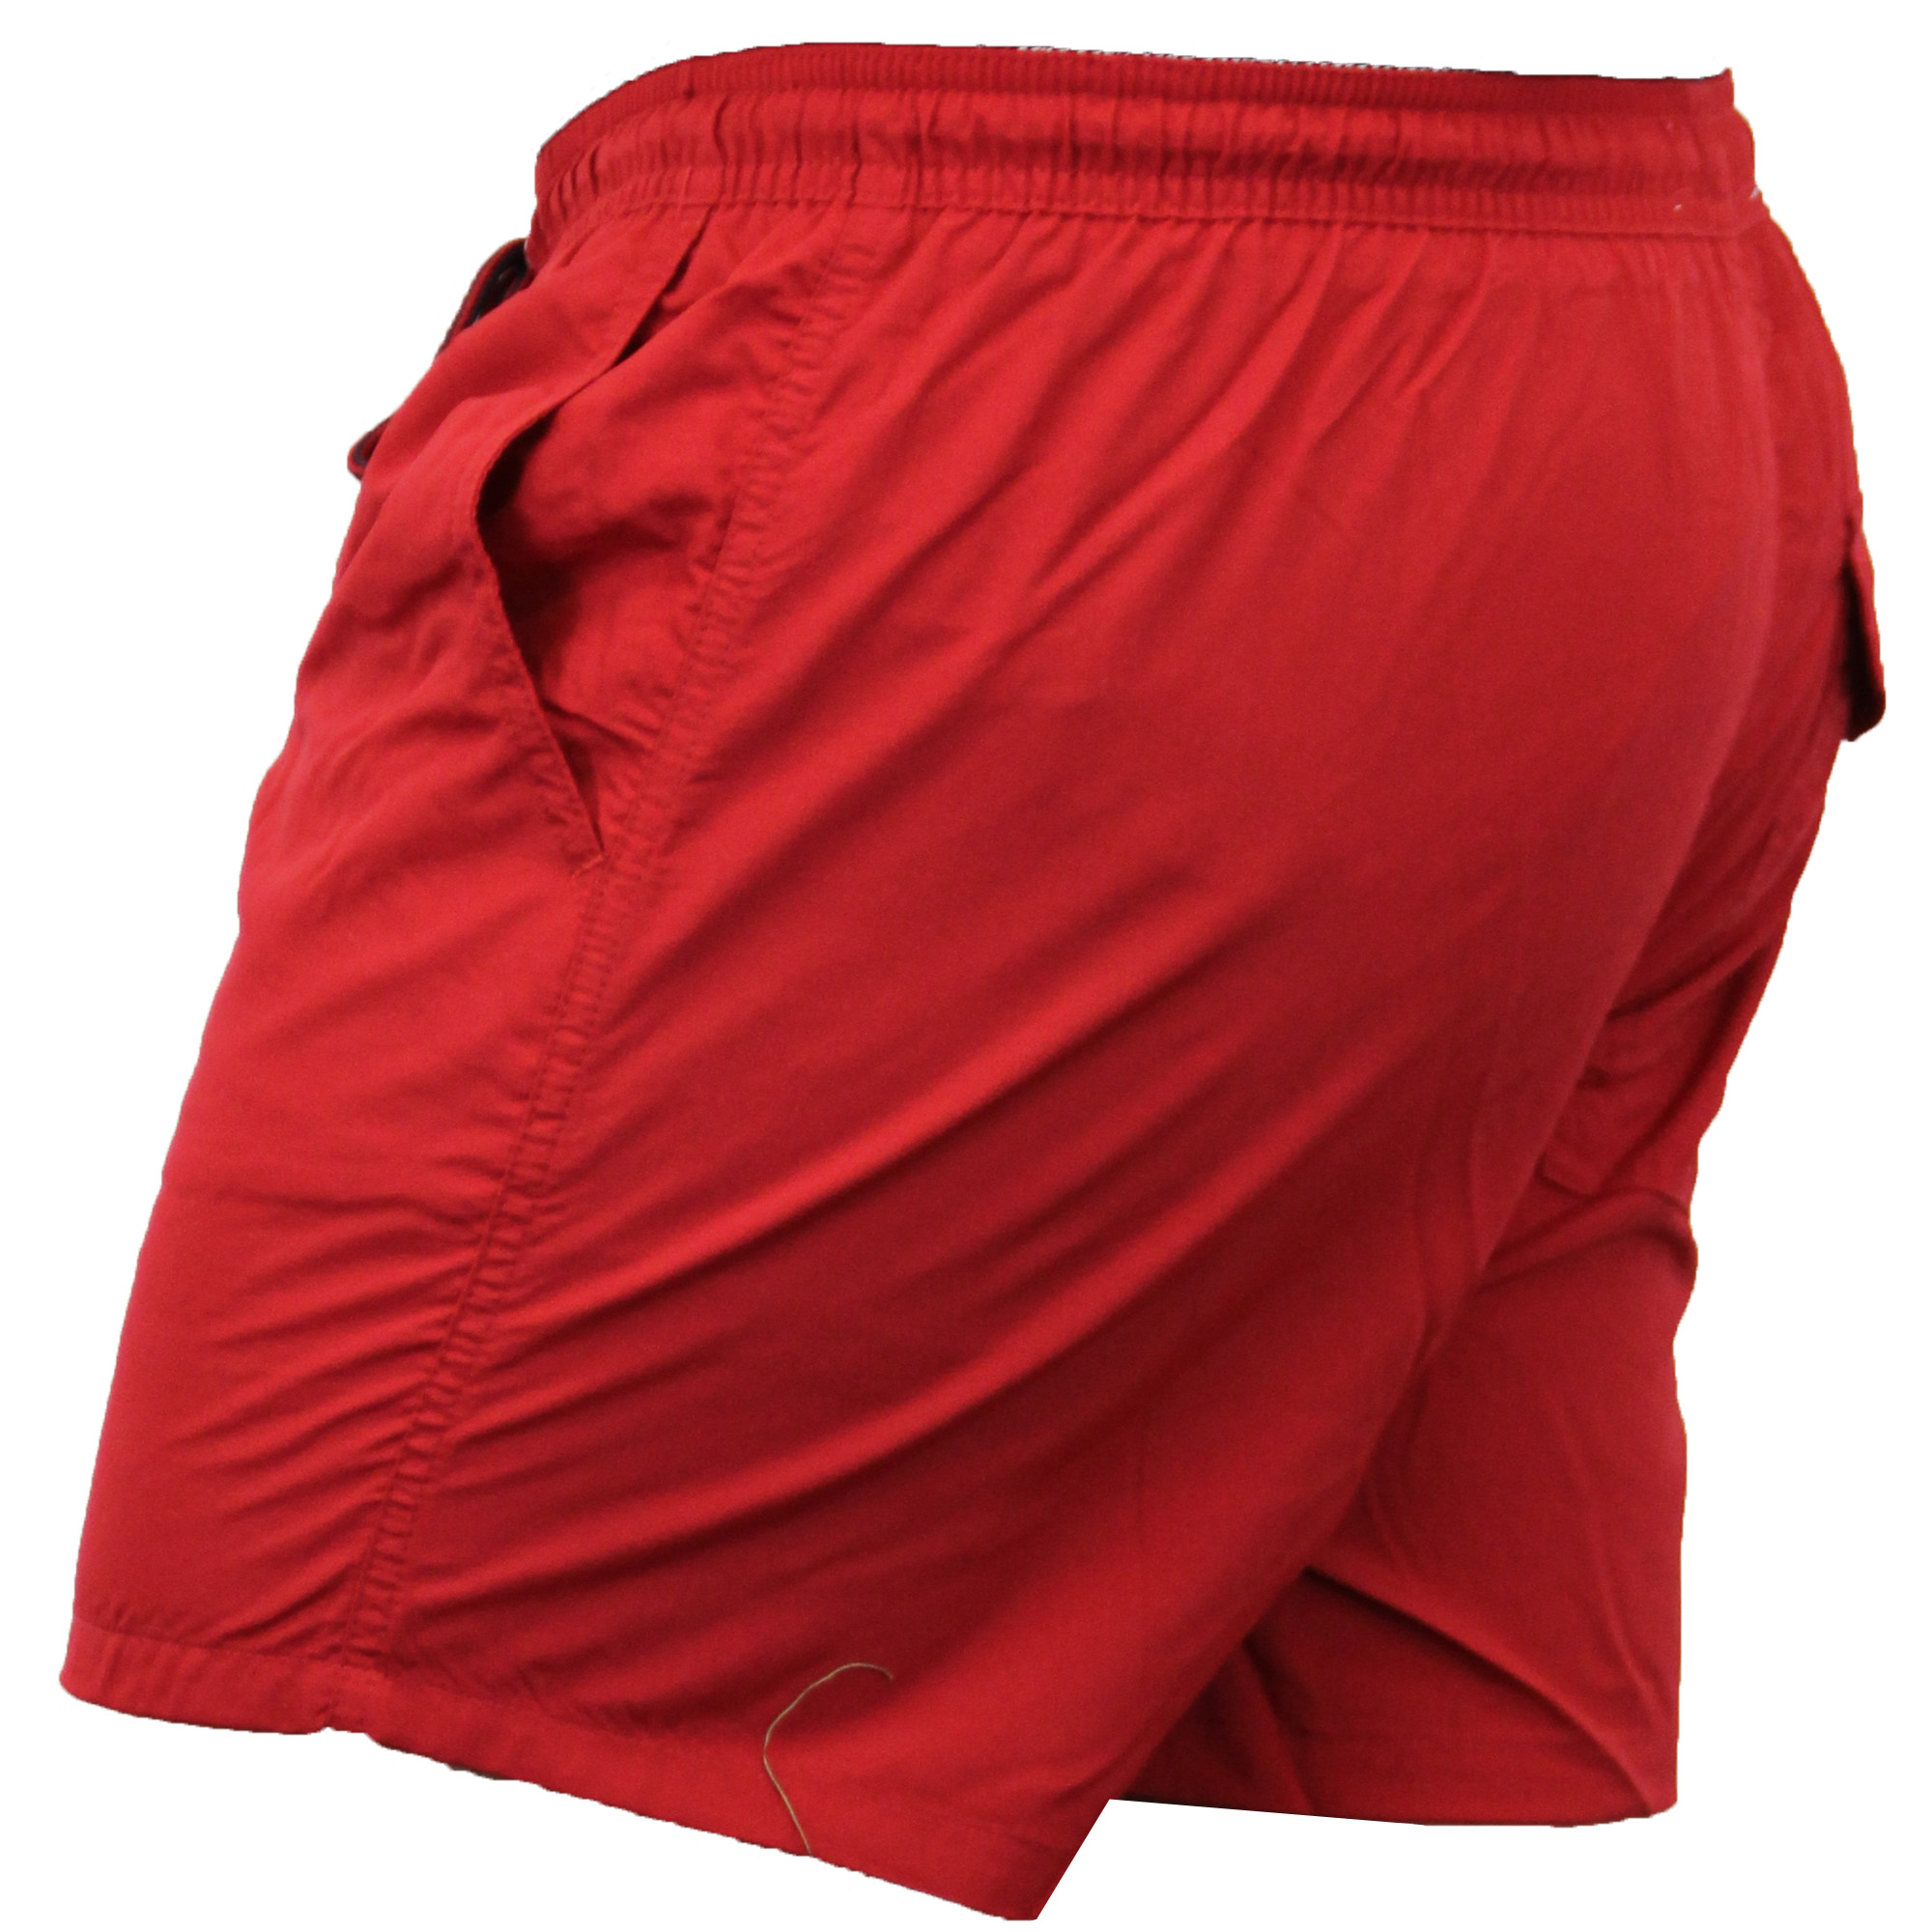 Mens-Swim-Board-Shorts-By-Brave-Soul-Mesh-Lined-New thumbnail 61